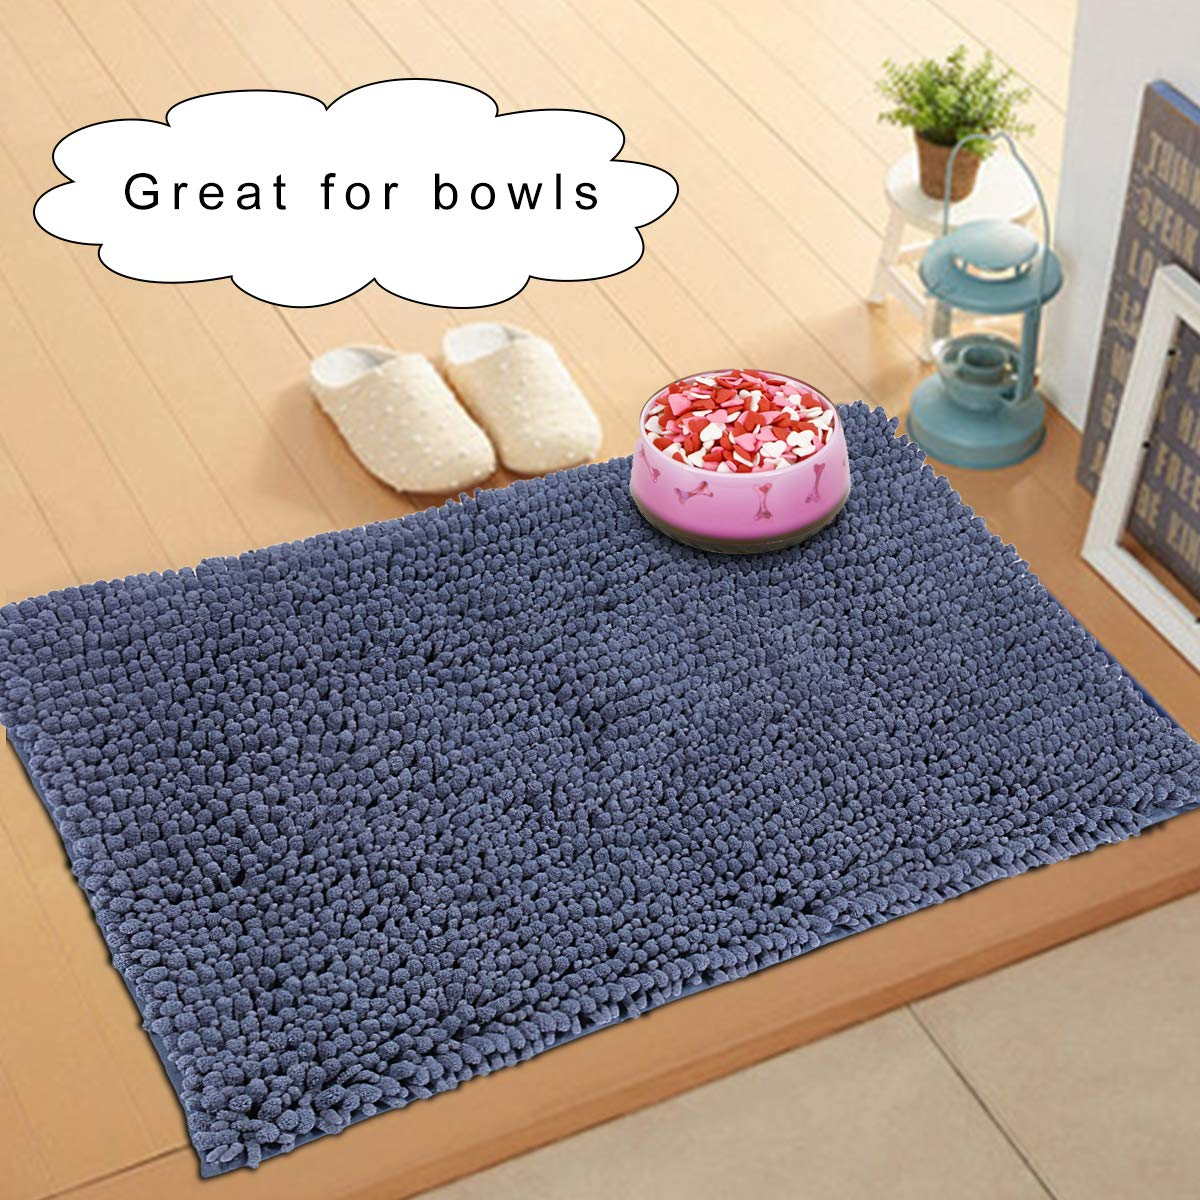 My Pet Territory for Dog and Cat-Ultra Absorbent Microfiber Chenille Dog Mat, Durable, Quick Drying, Washable, Prevent Mud Dirt, Clean Pooch Mat, Keep Your House Blue 31 x 20 Inches Hevice cw01